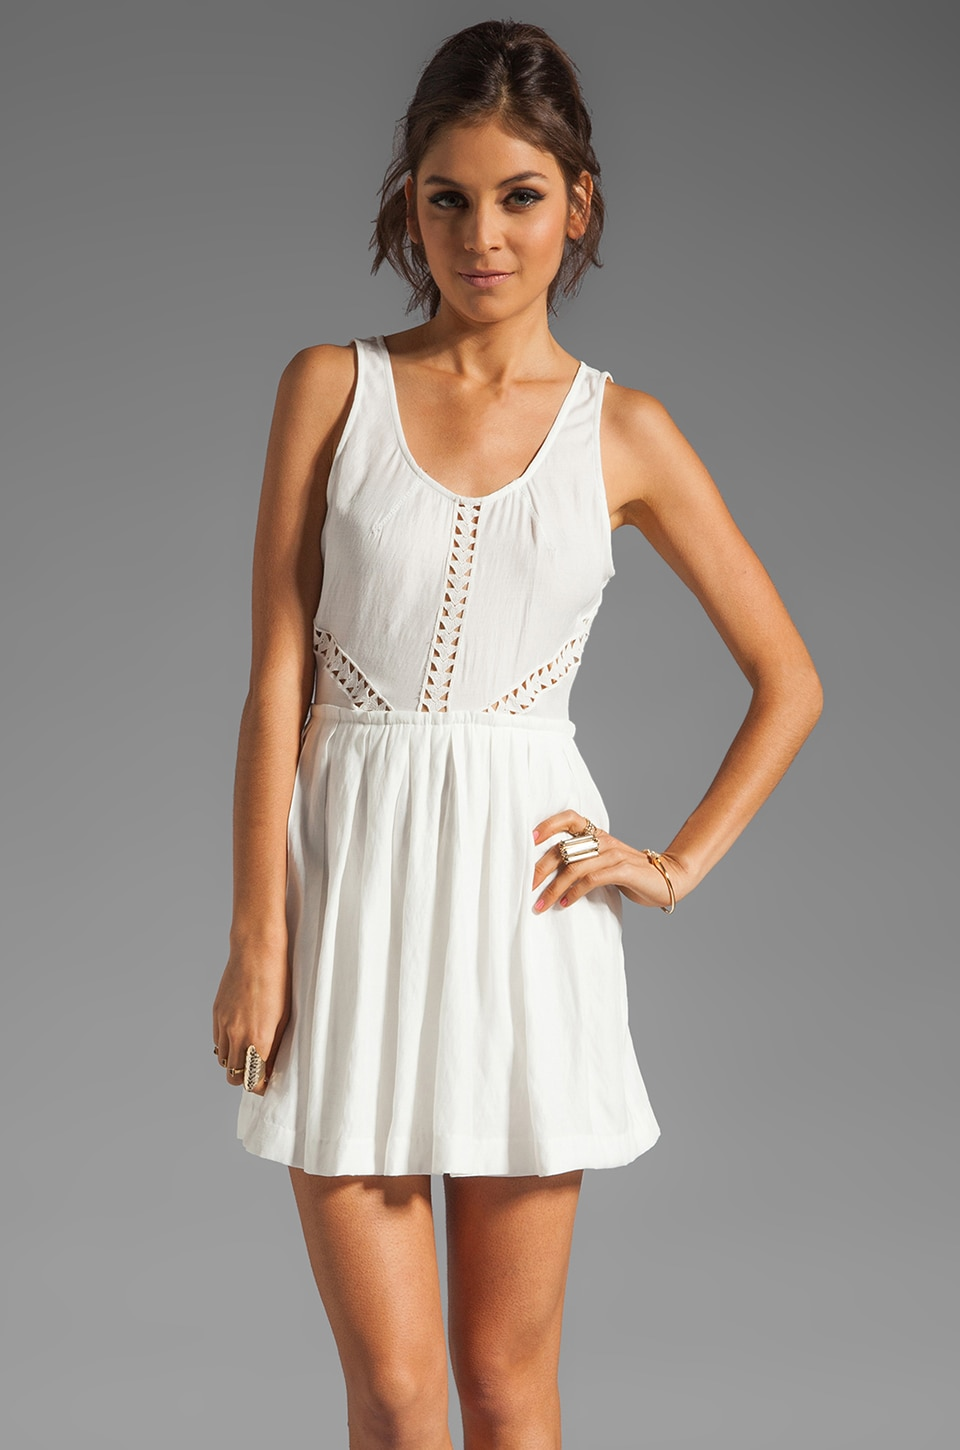 Dolce Vita Konomi Dress in White